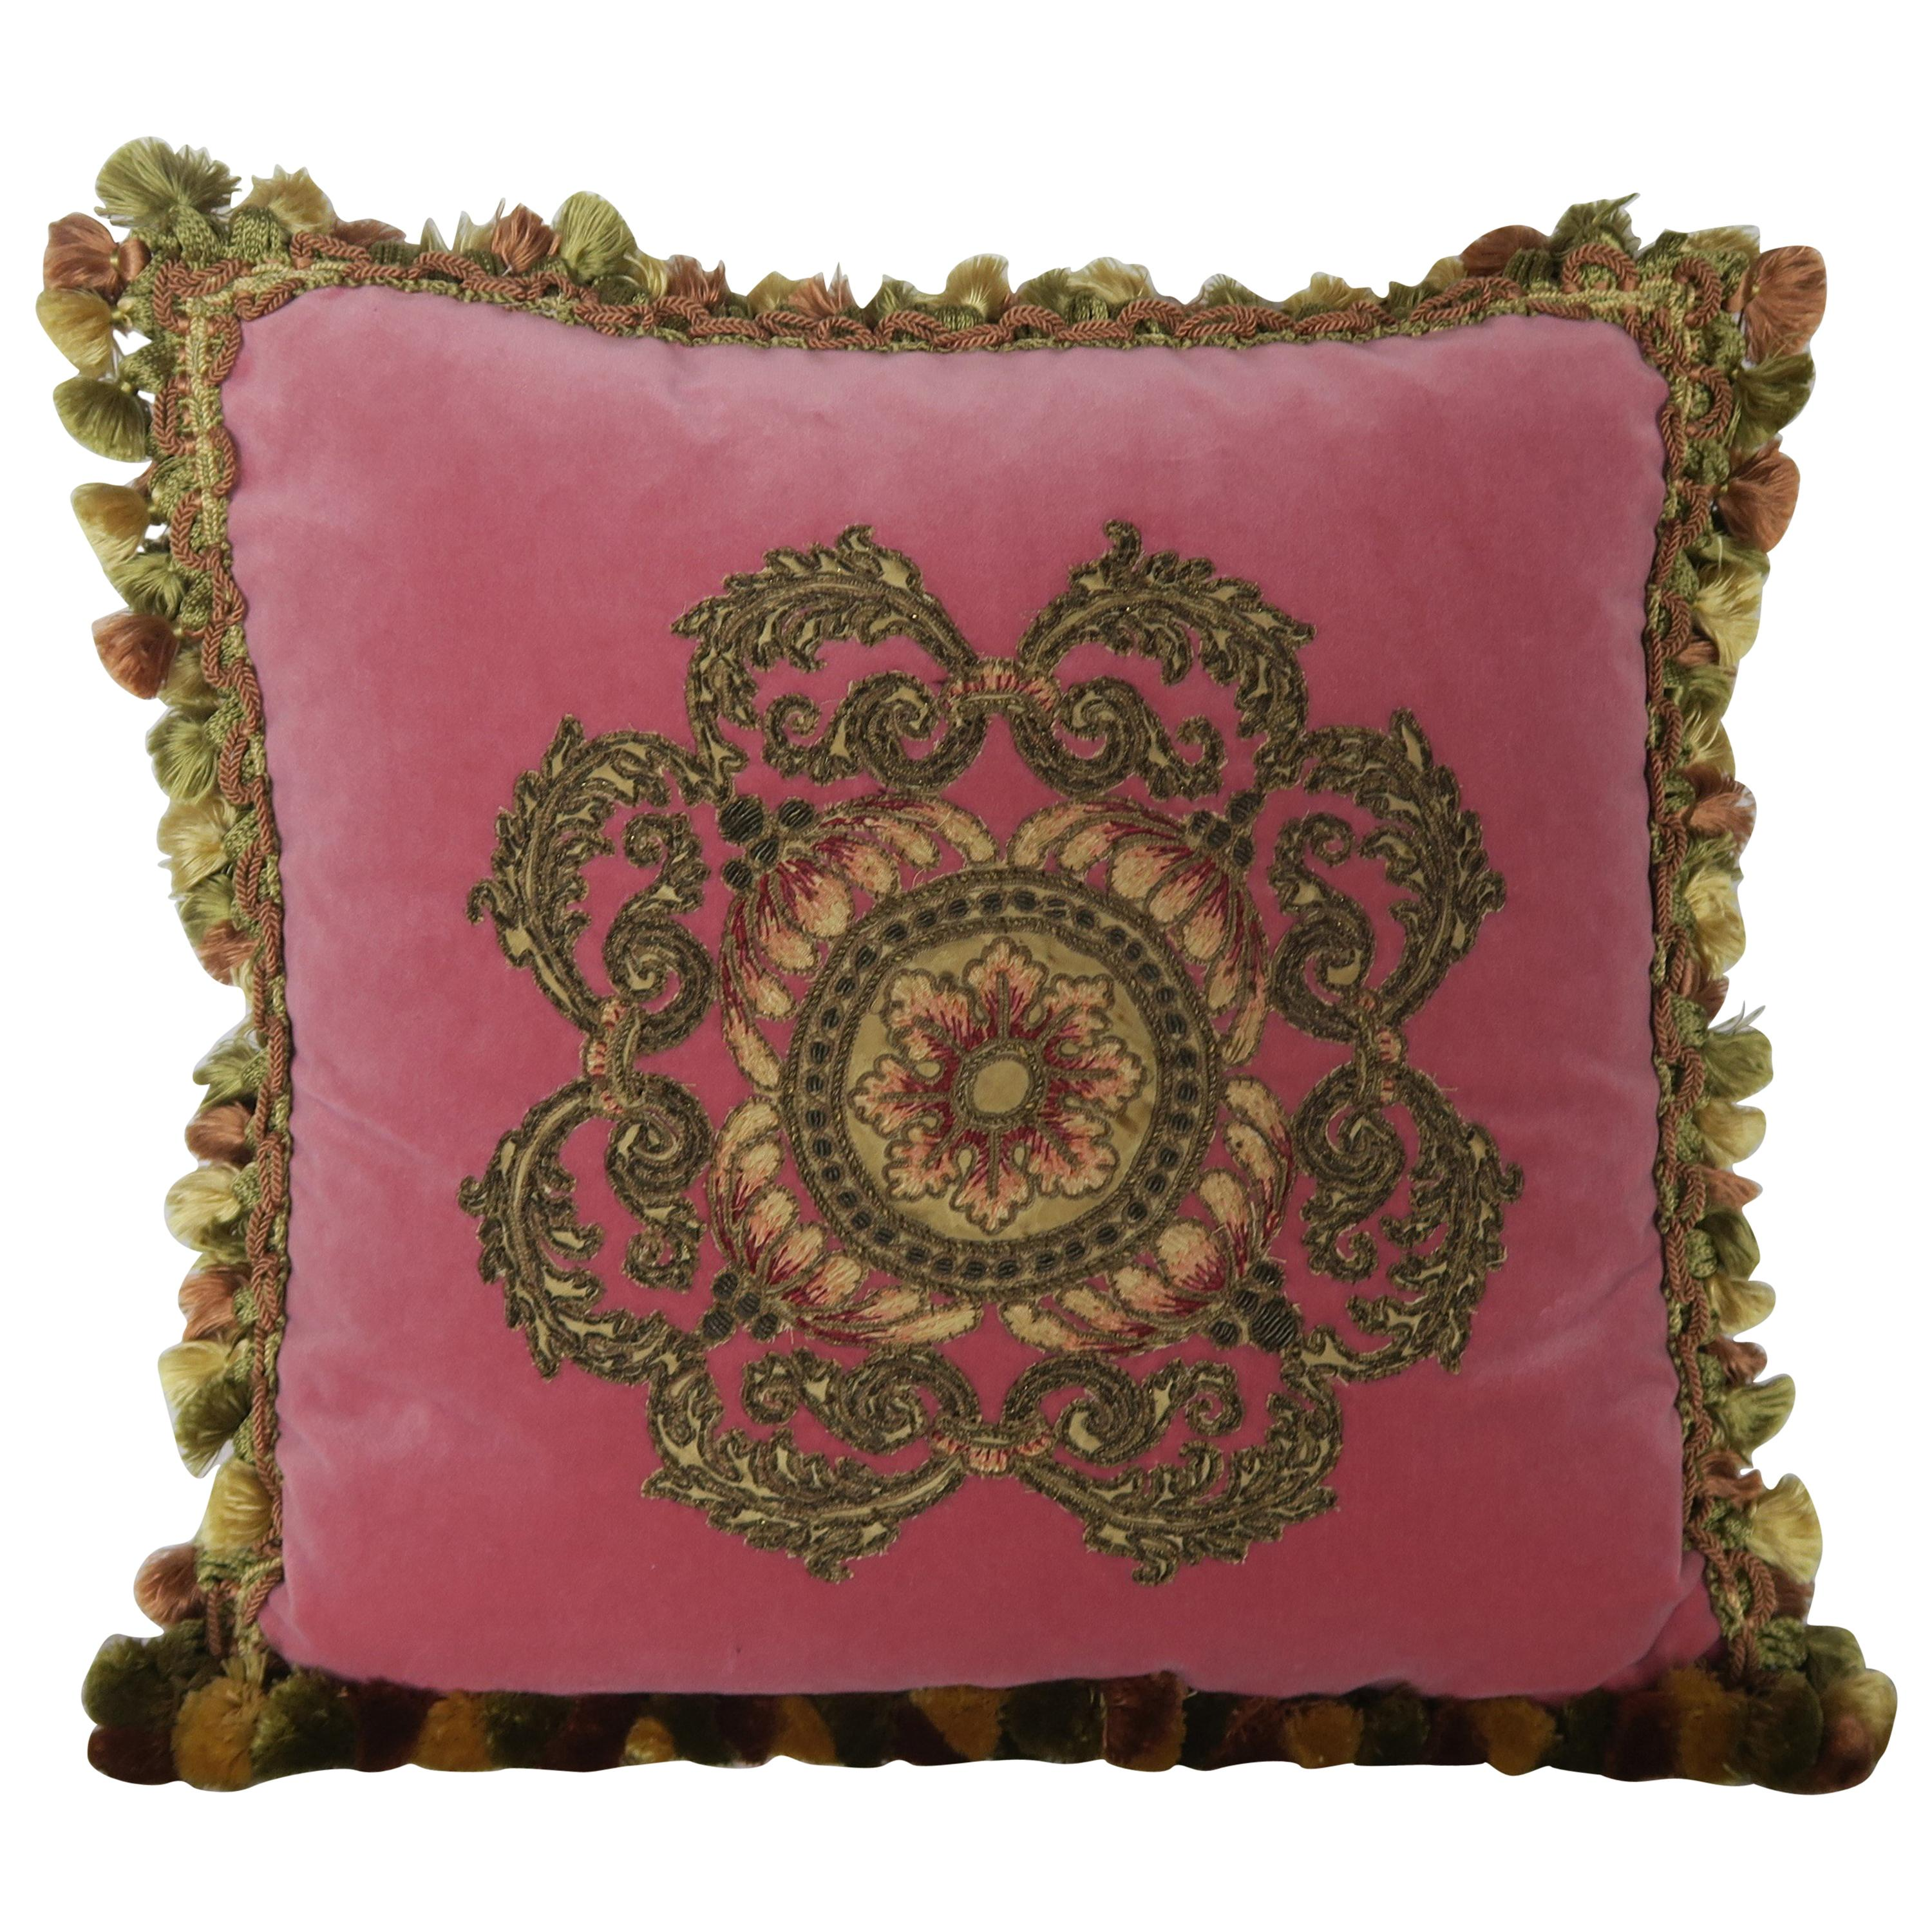 Metallic Appliqued Pink Velvet Pillow with Tassels by Melissa Levinson